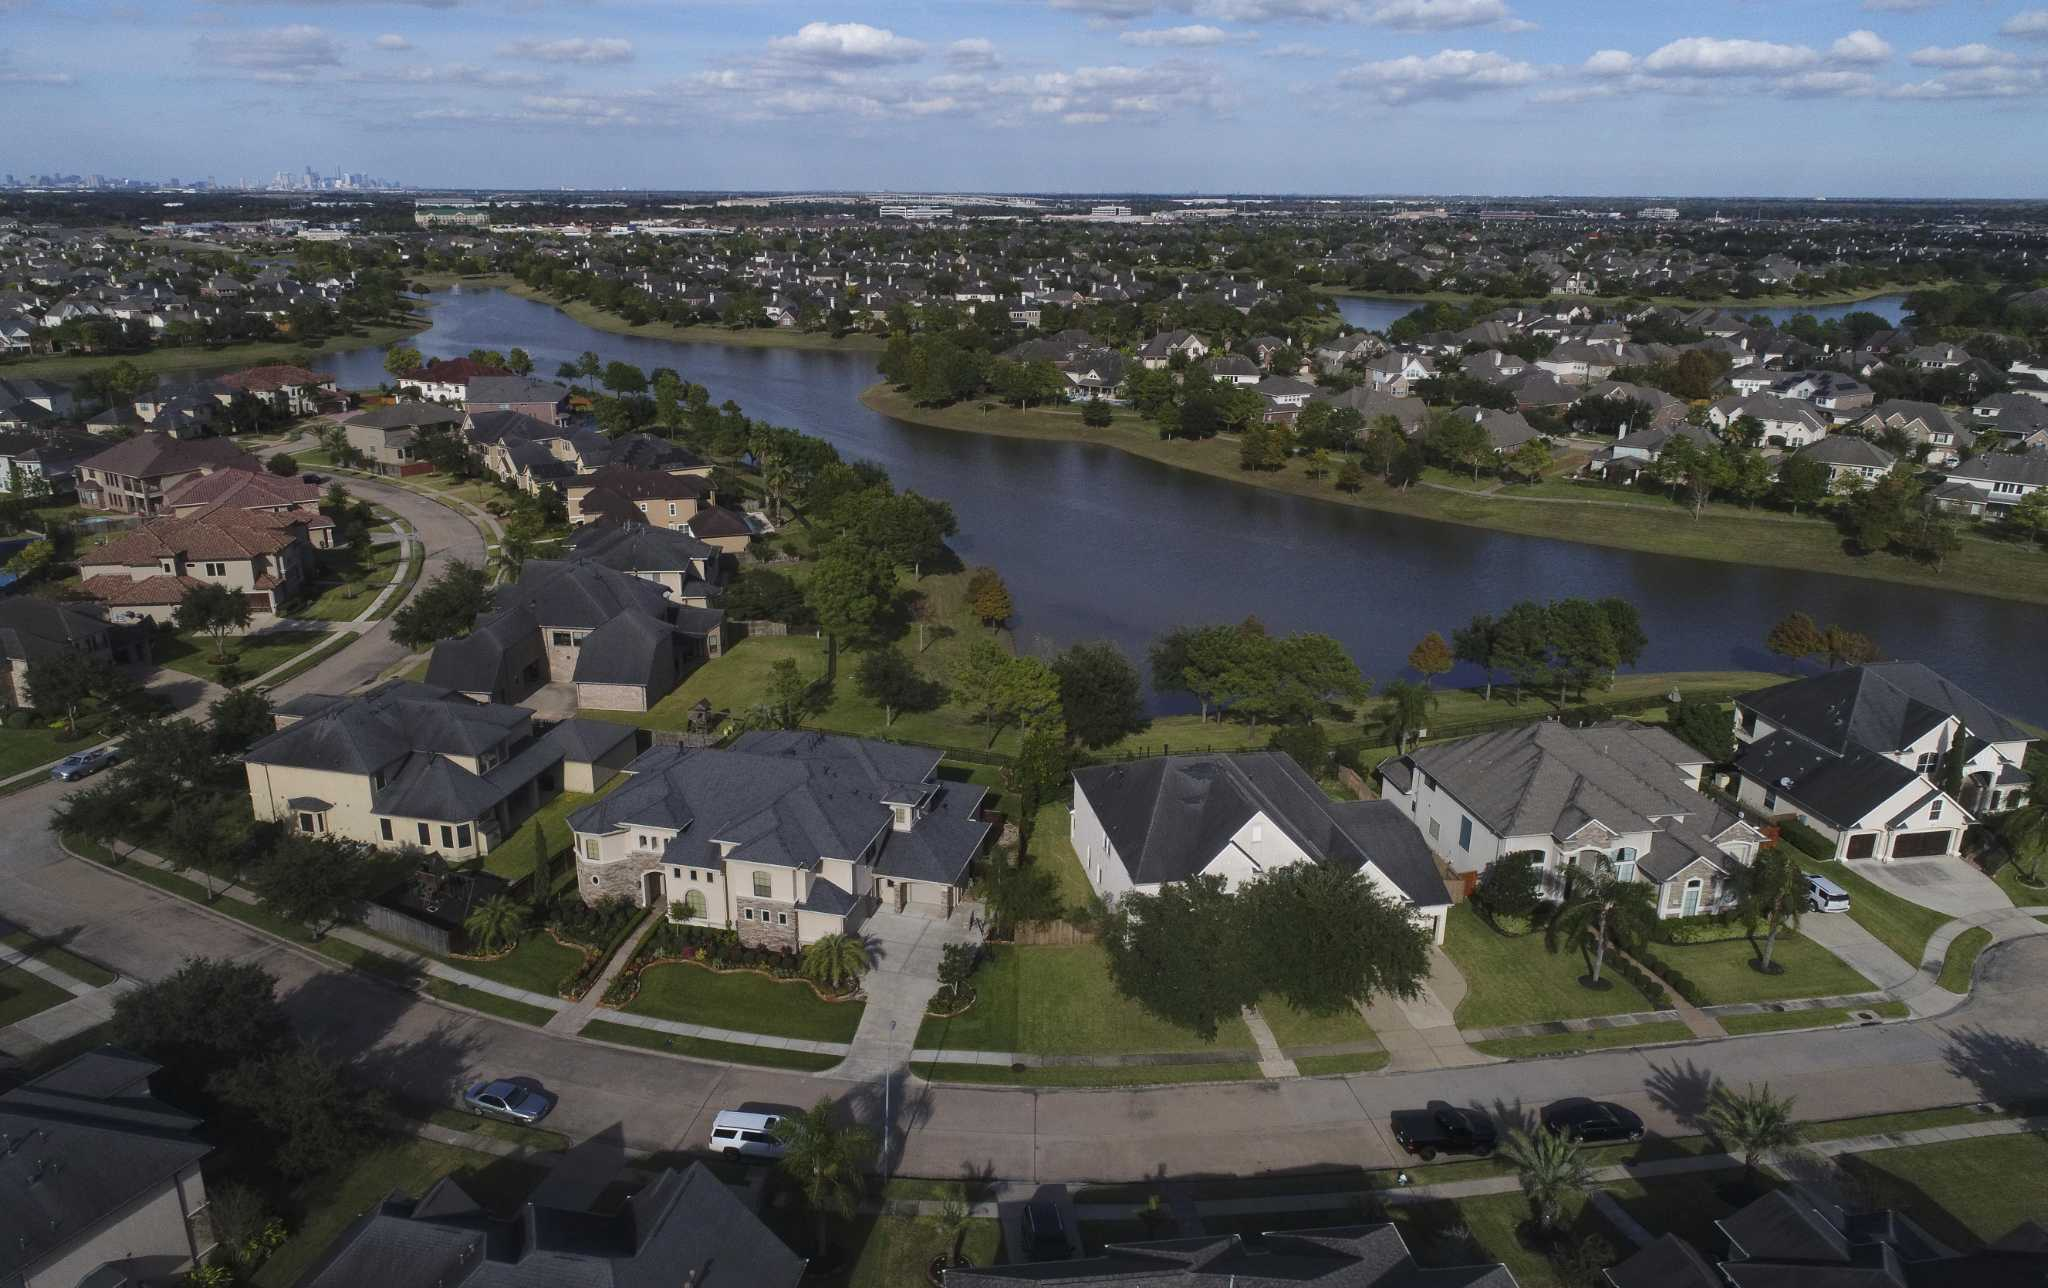 houston suburbs striking it rich culturally economically with population growth houstonchronicle com https www houstonchronicle com business article houston suburbs striking it rich culturally 14833388 php